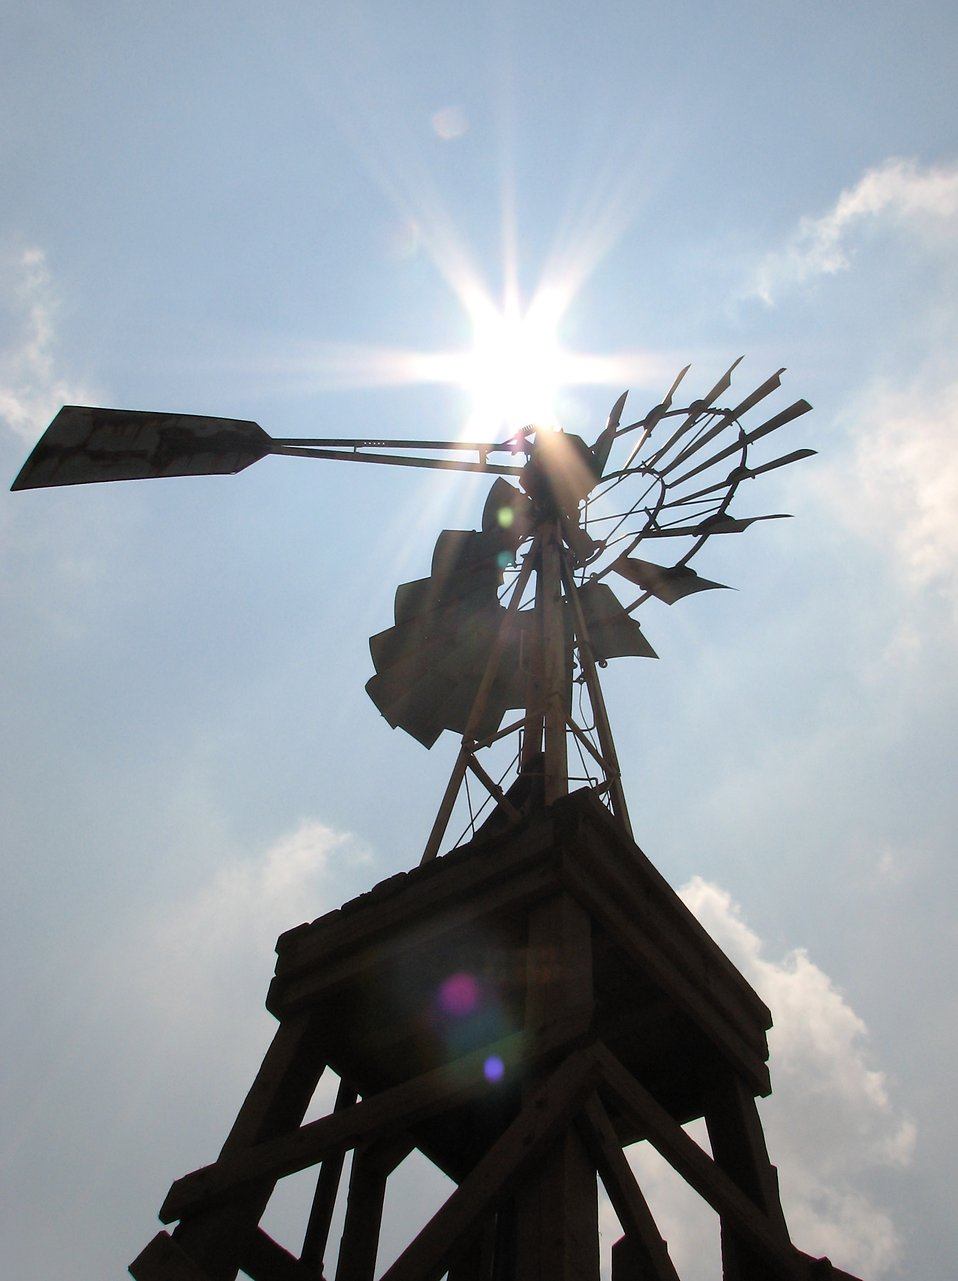 An old farm windmill shining under the sun : Free Stock Photo